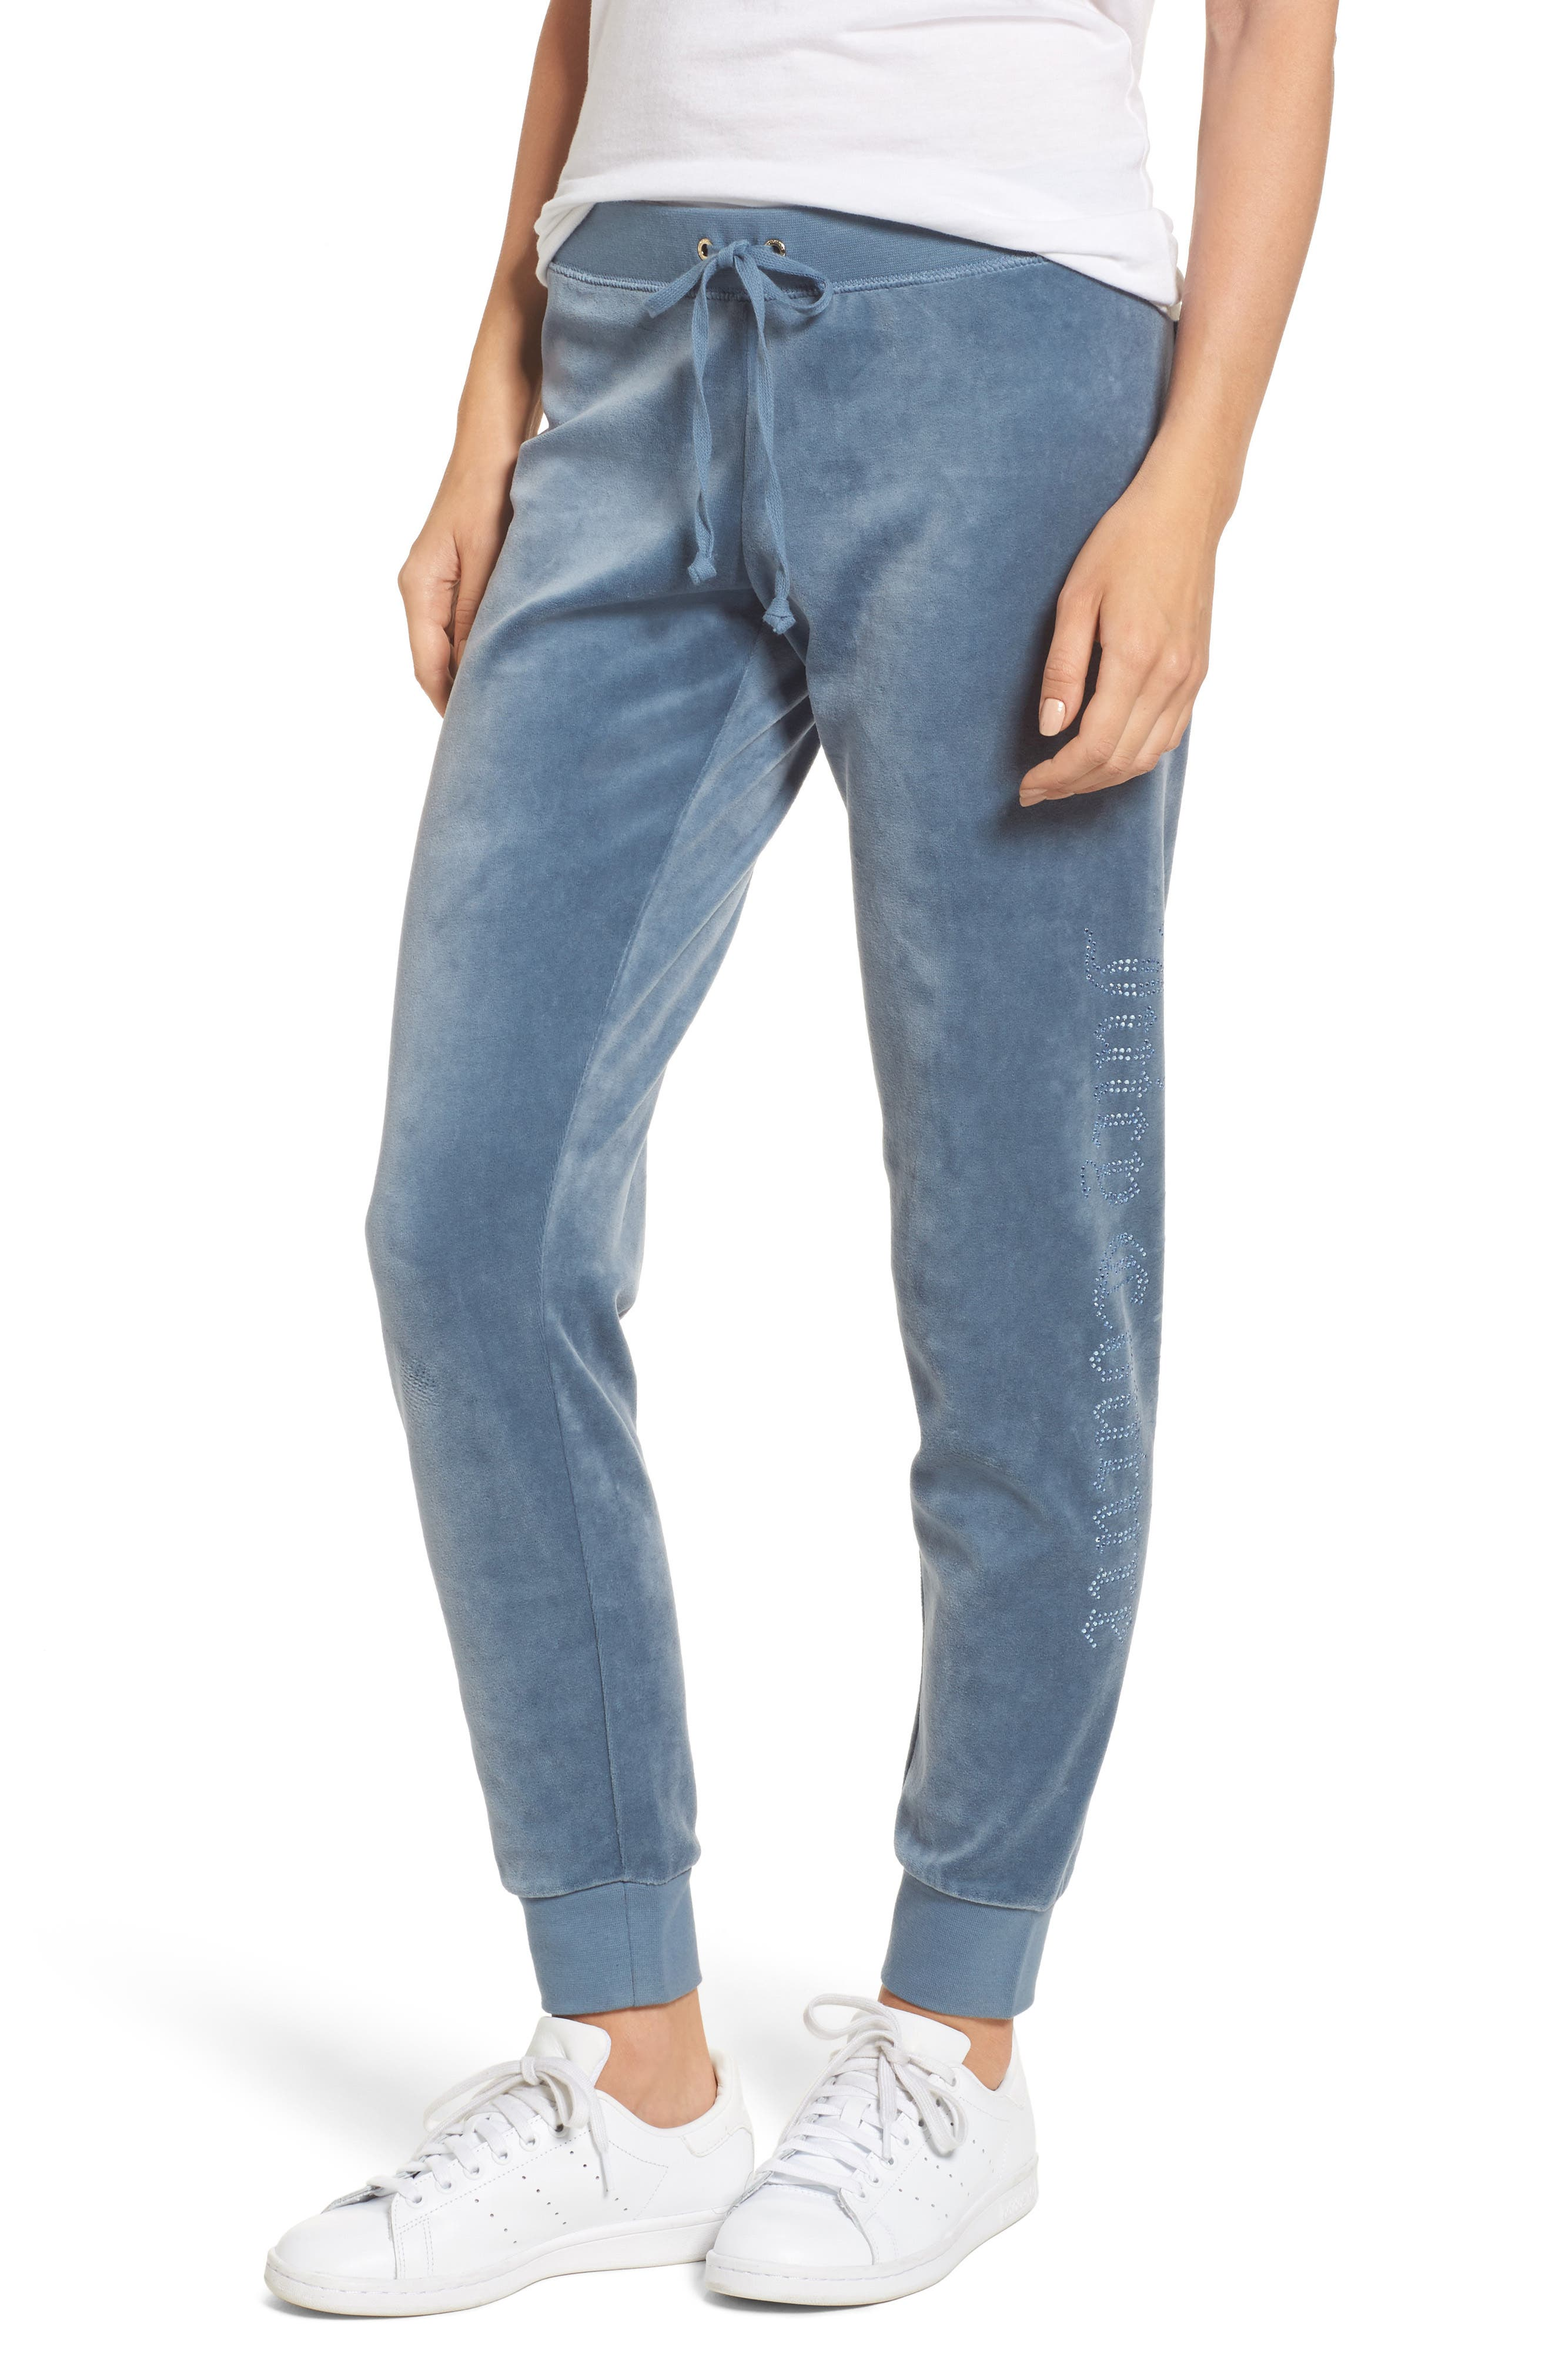 Alternate Image 1 Selected - Juicy Couture Zuma Crystal Velour Pants